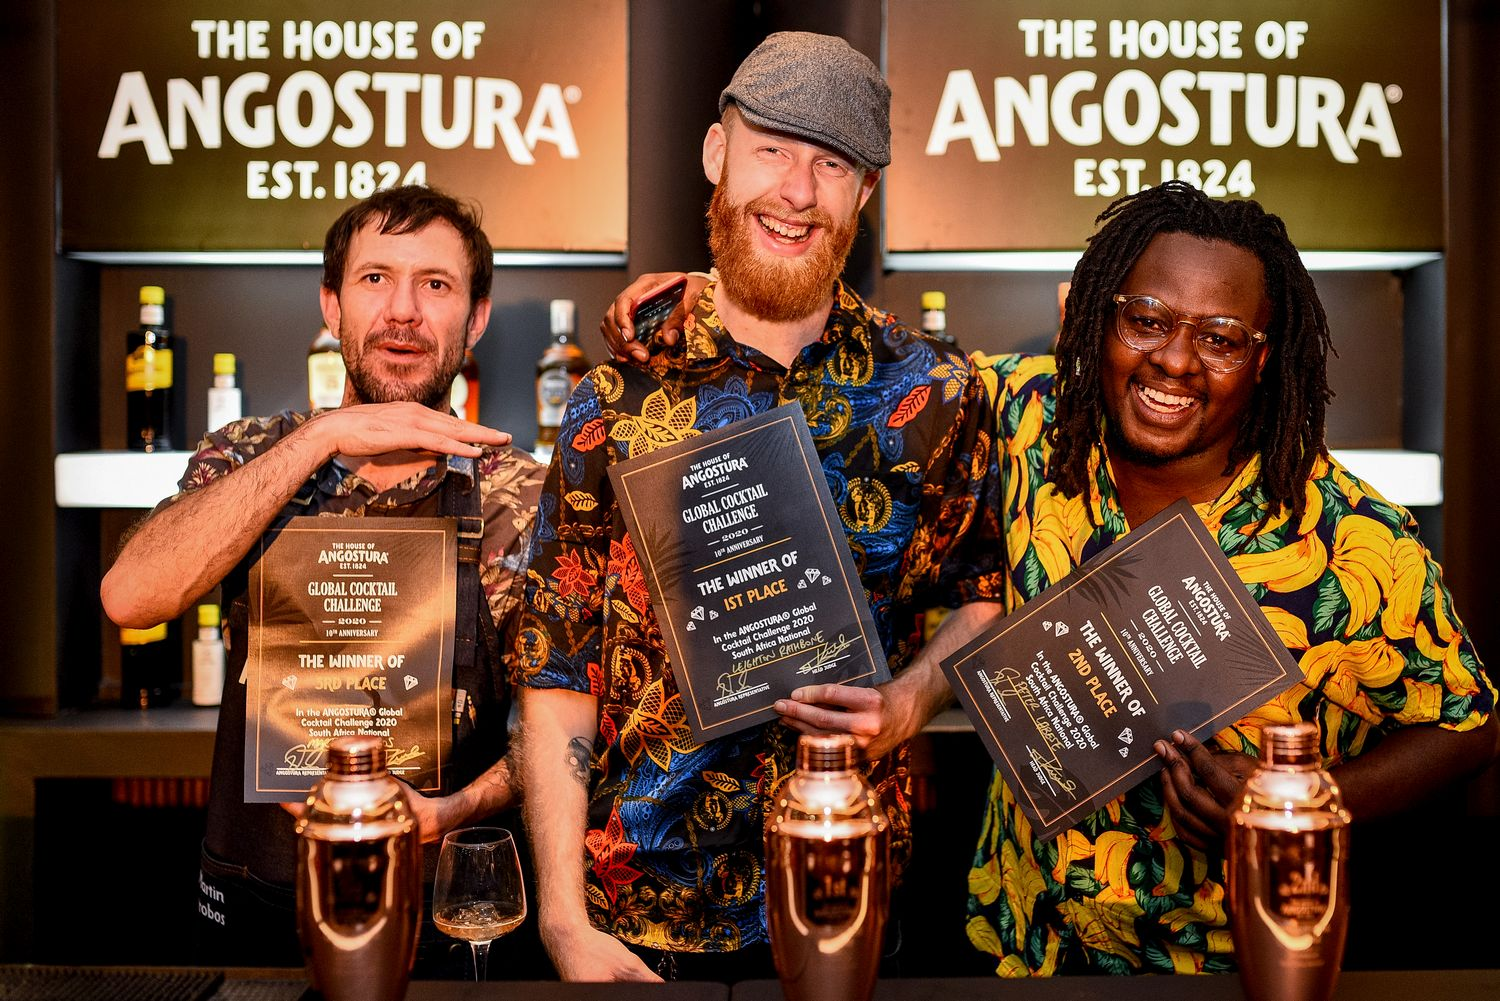 Leighton Rathbone is South Africa's National Angostura® Global Cocktail Challenge Winner photo